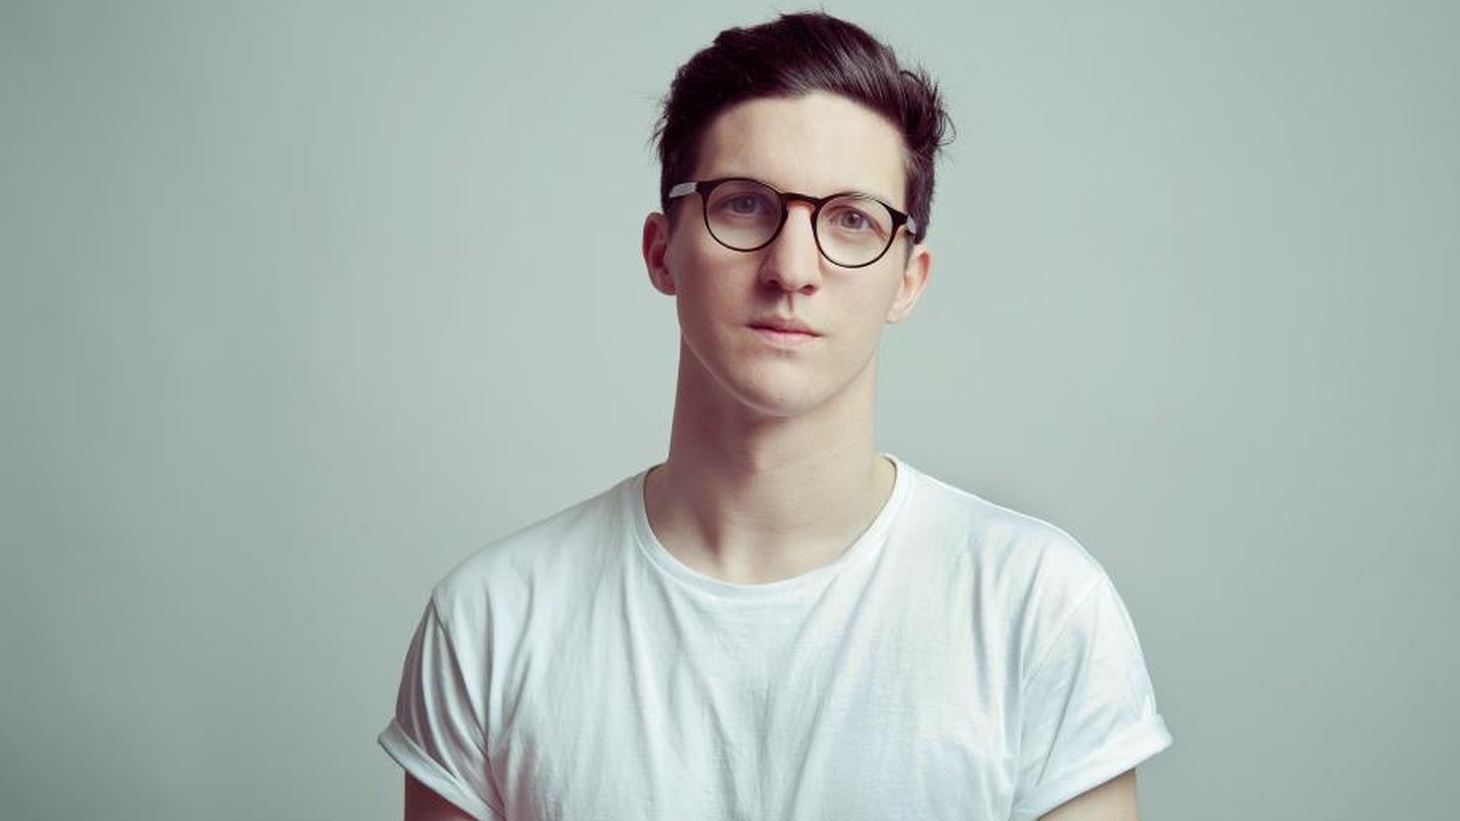 Liverpool's Dan Croll strikes a perfect balance between his folky side and his love of electronica.